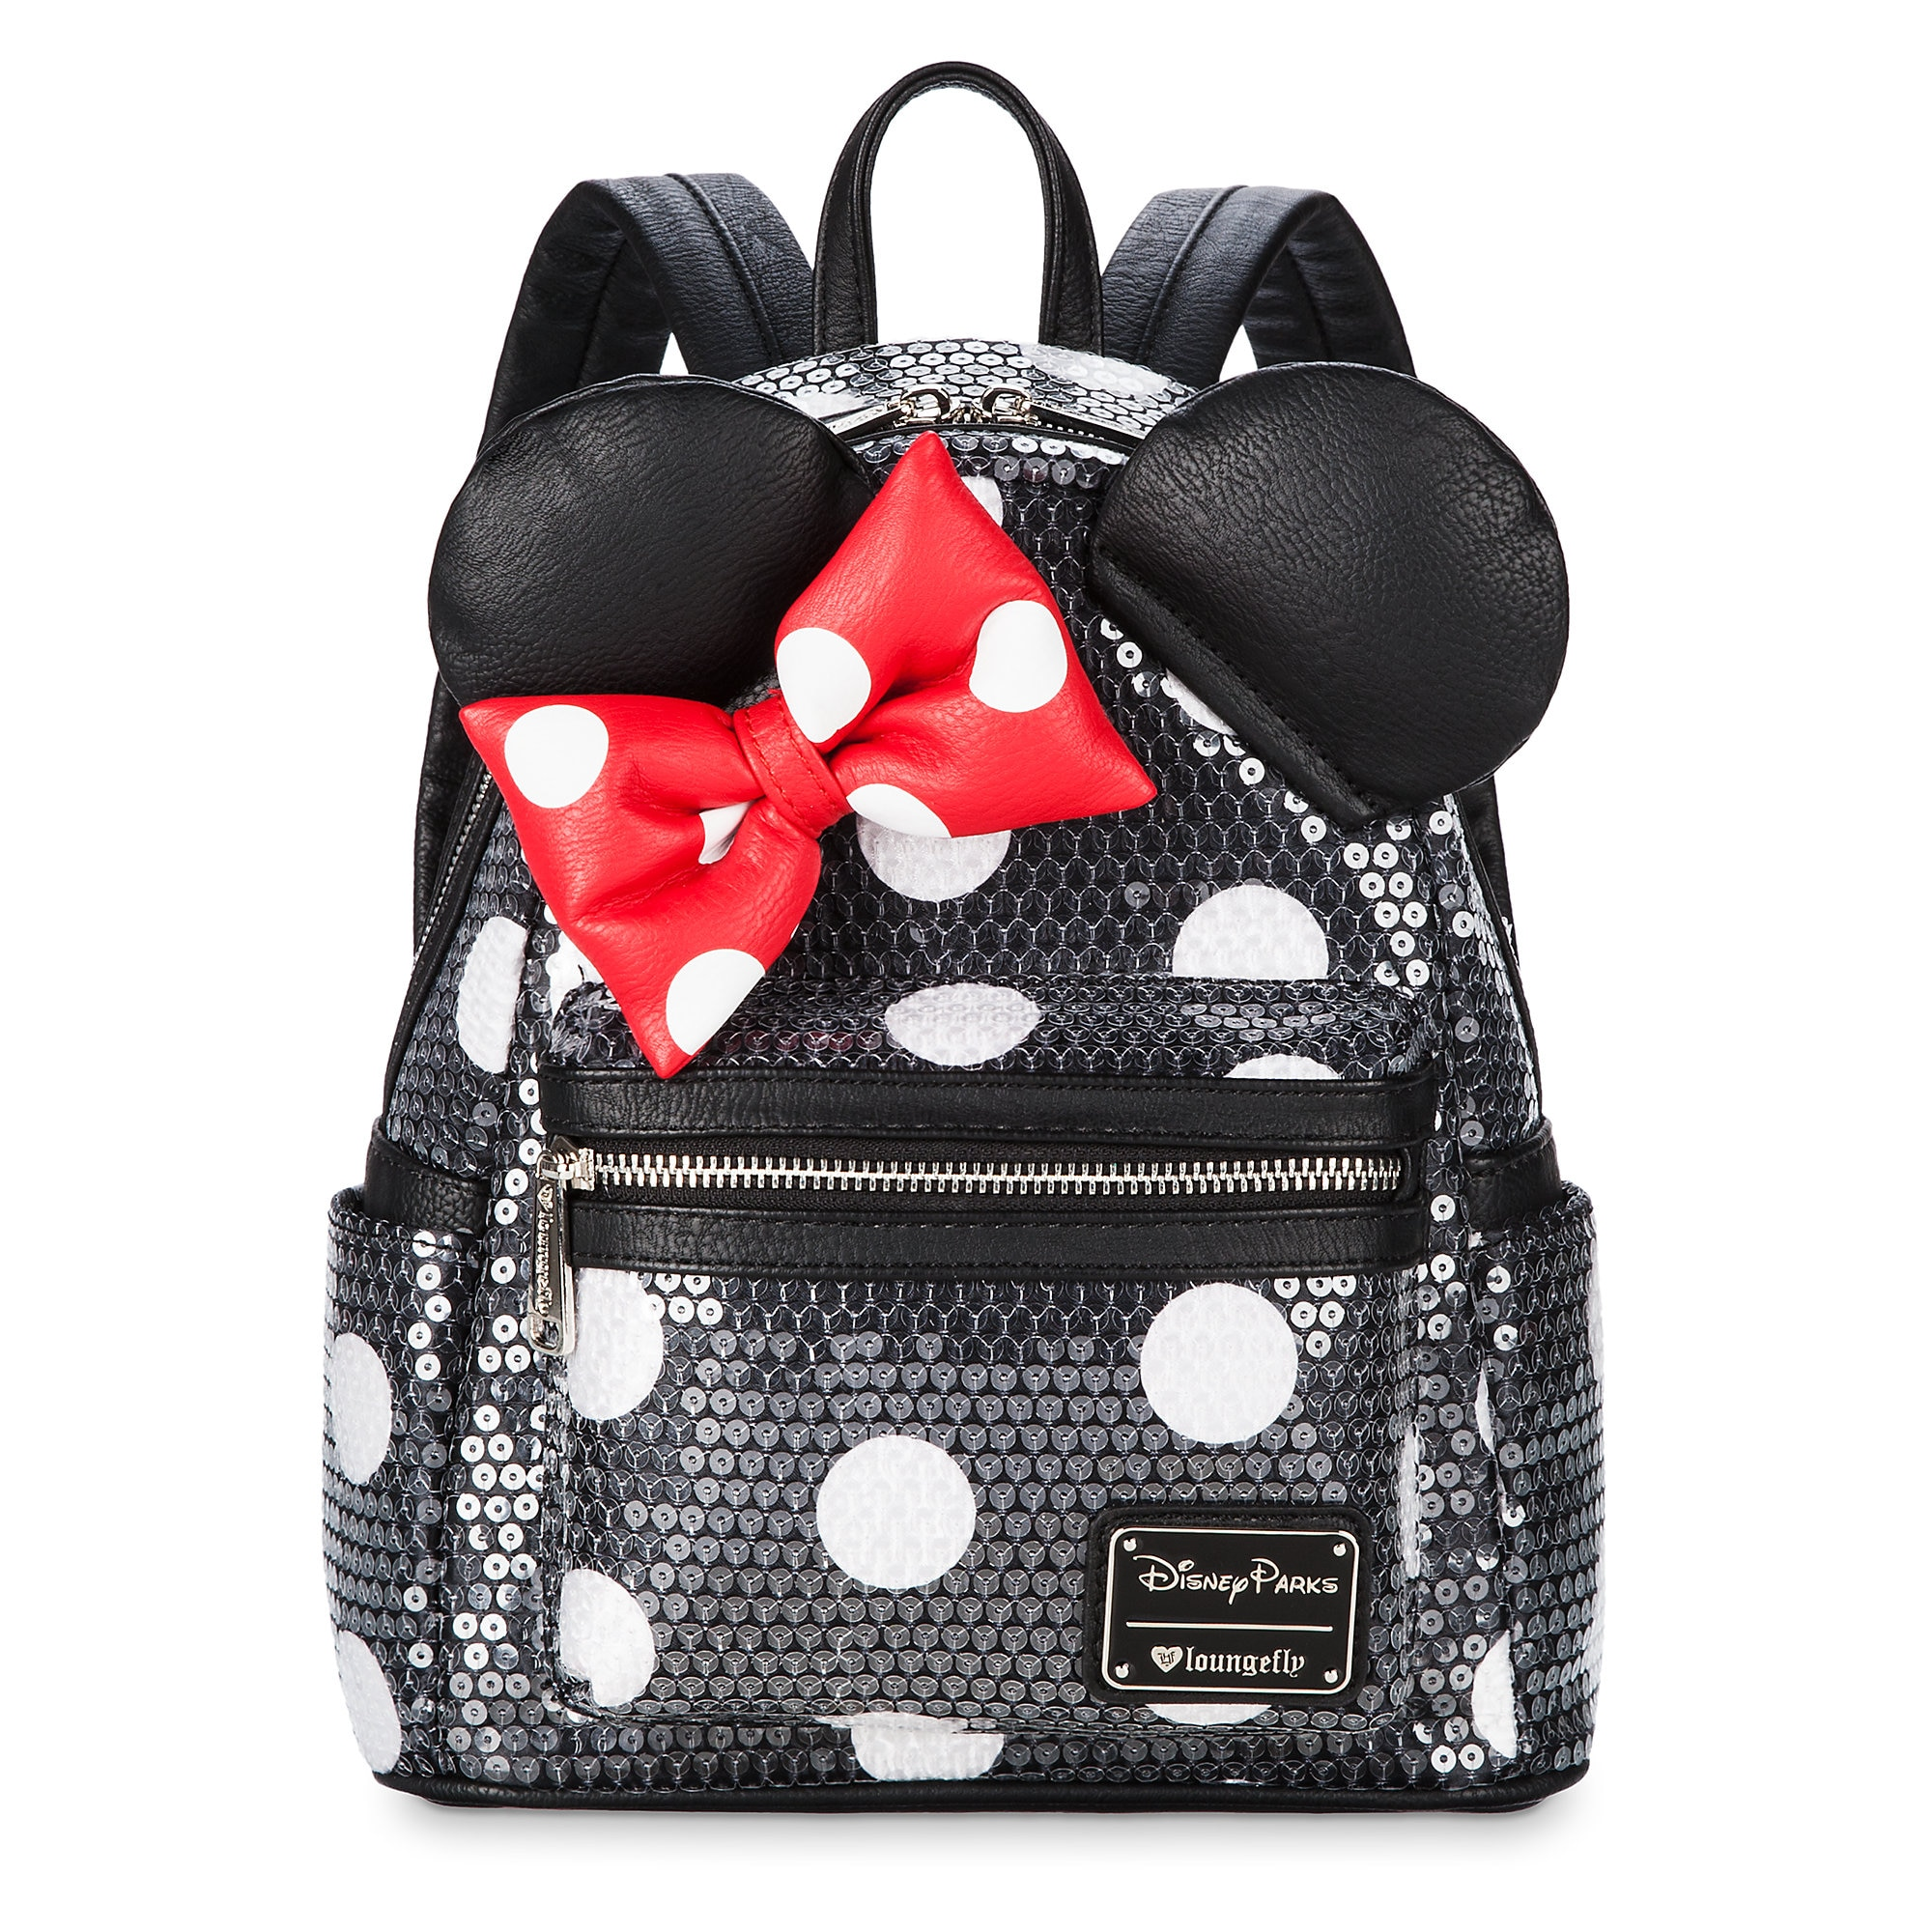 9416c08be090 Product image of minnie mouse sequined mini backpack loungefly jpg  1200x1200 Mini backpack